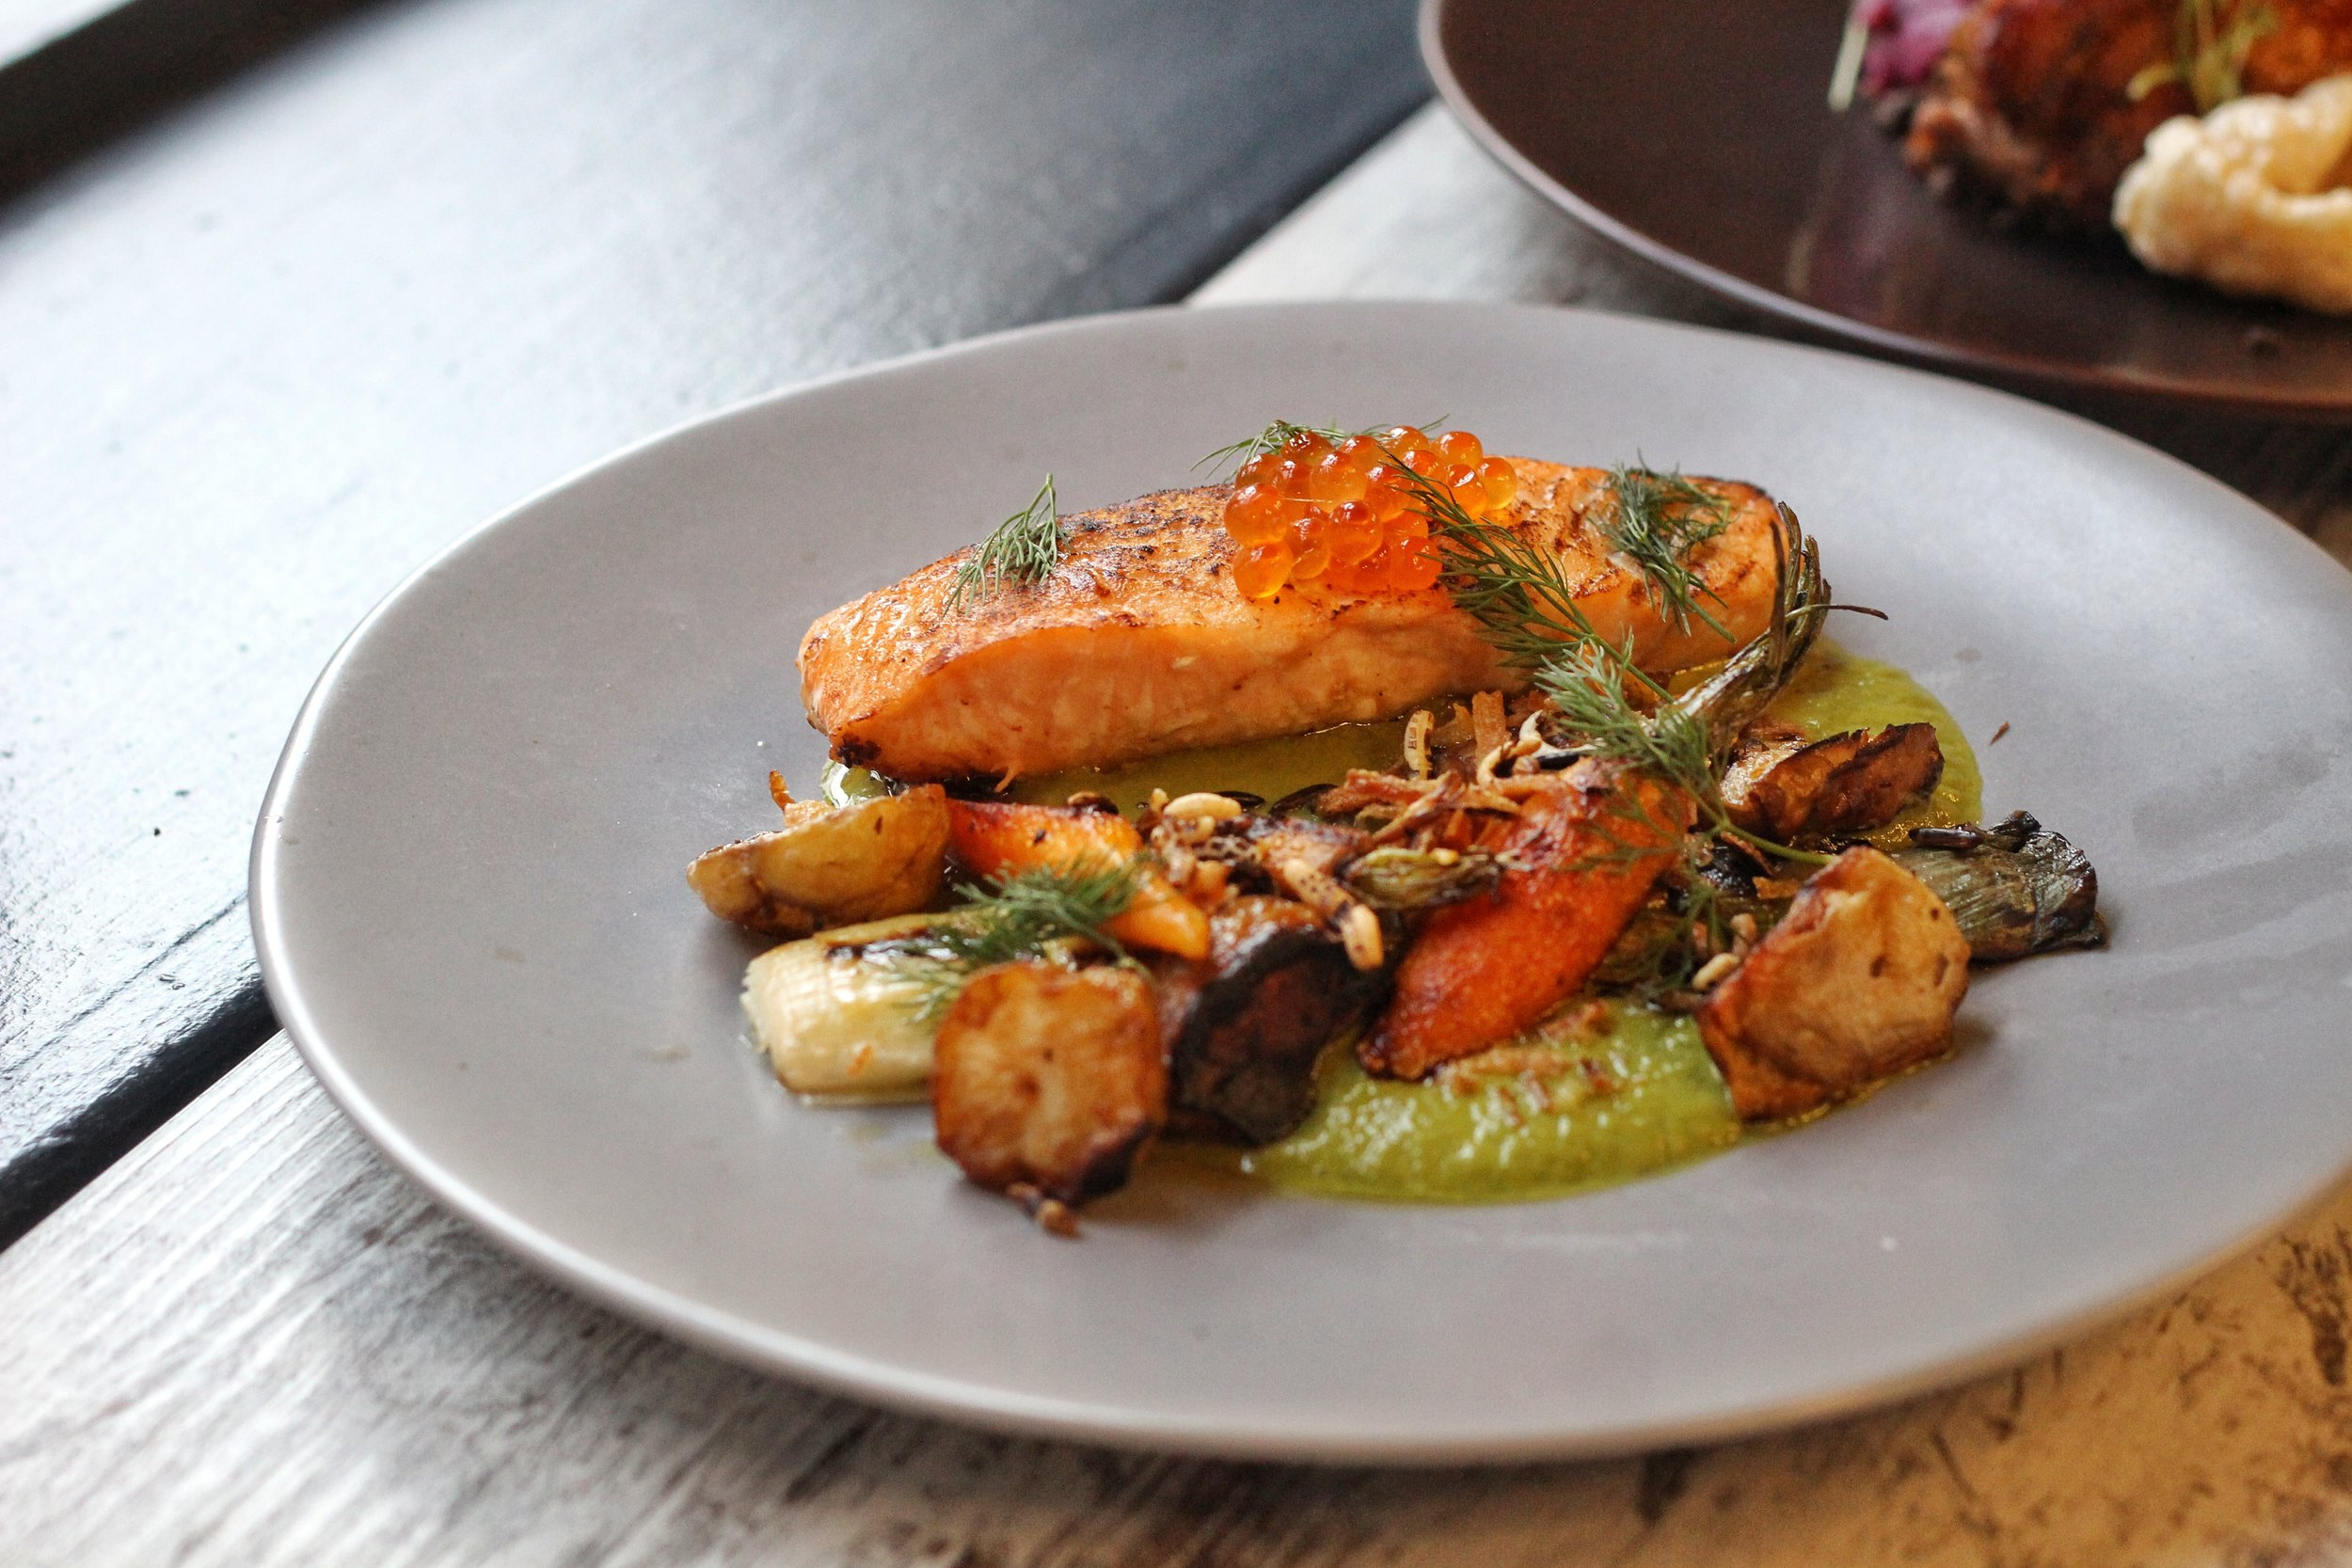 Torched Salmon  – roasted sun chokes, charred leeks, leek puree, puffed wild rice, roasted carrots, ikura